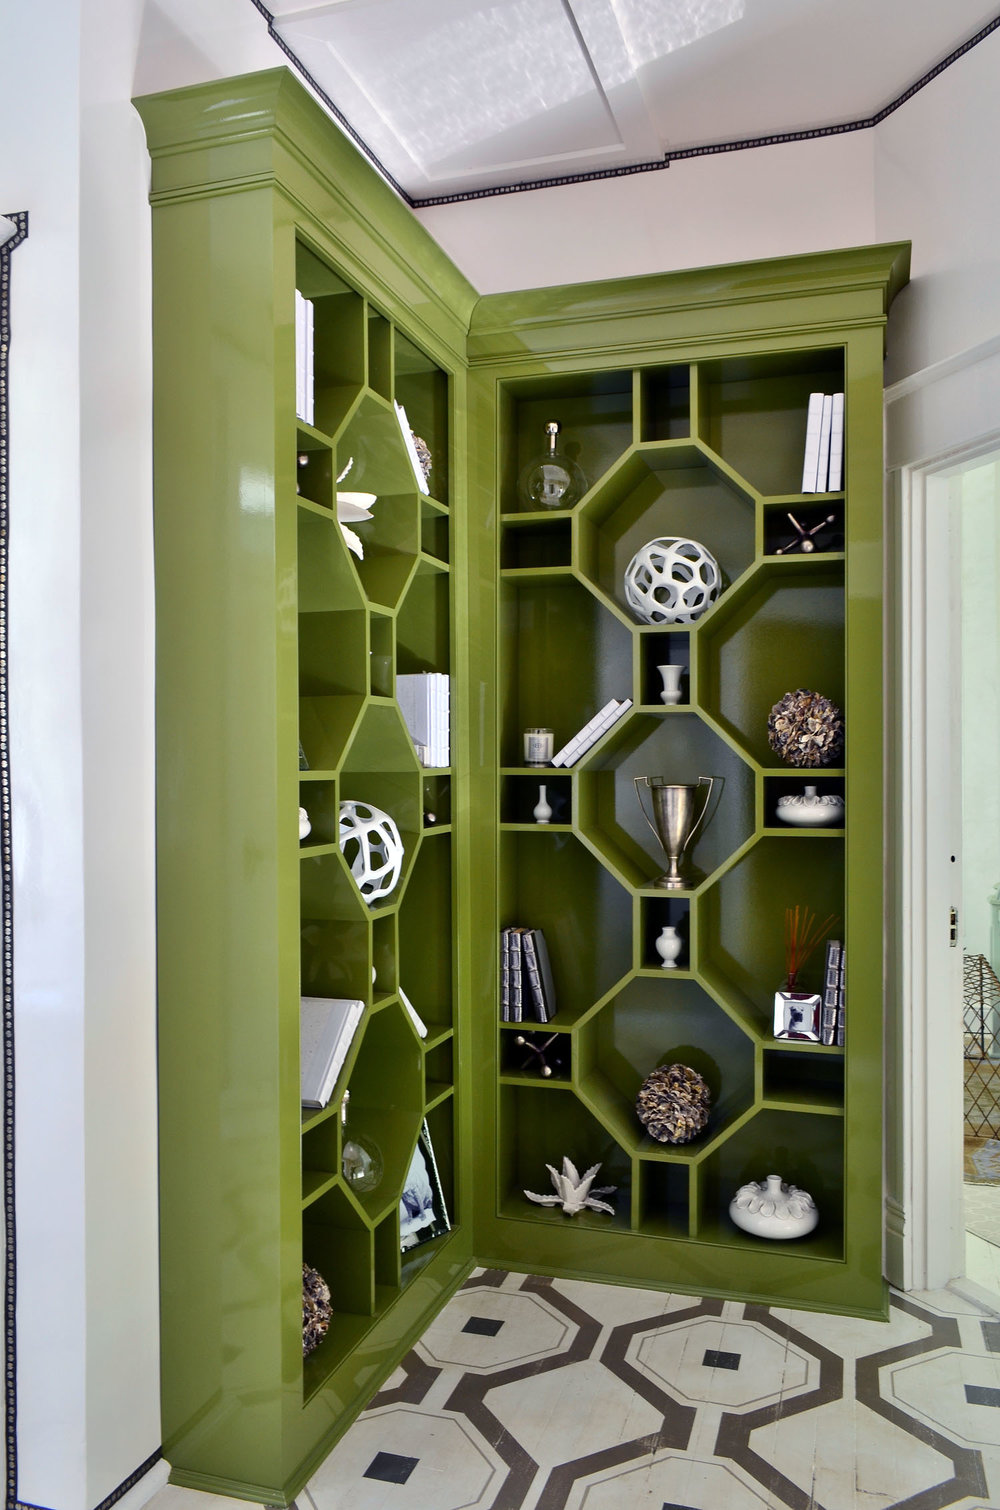 BBD_2012_Richmond_Showhouse_0105.jpg